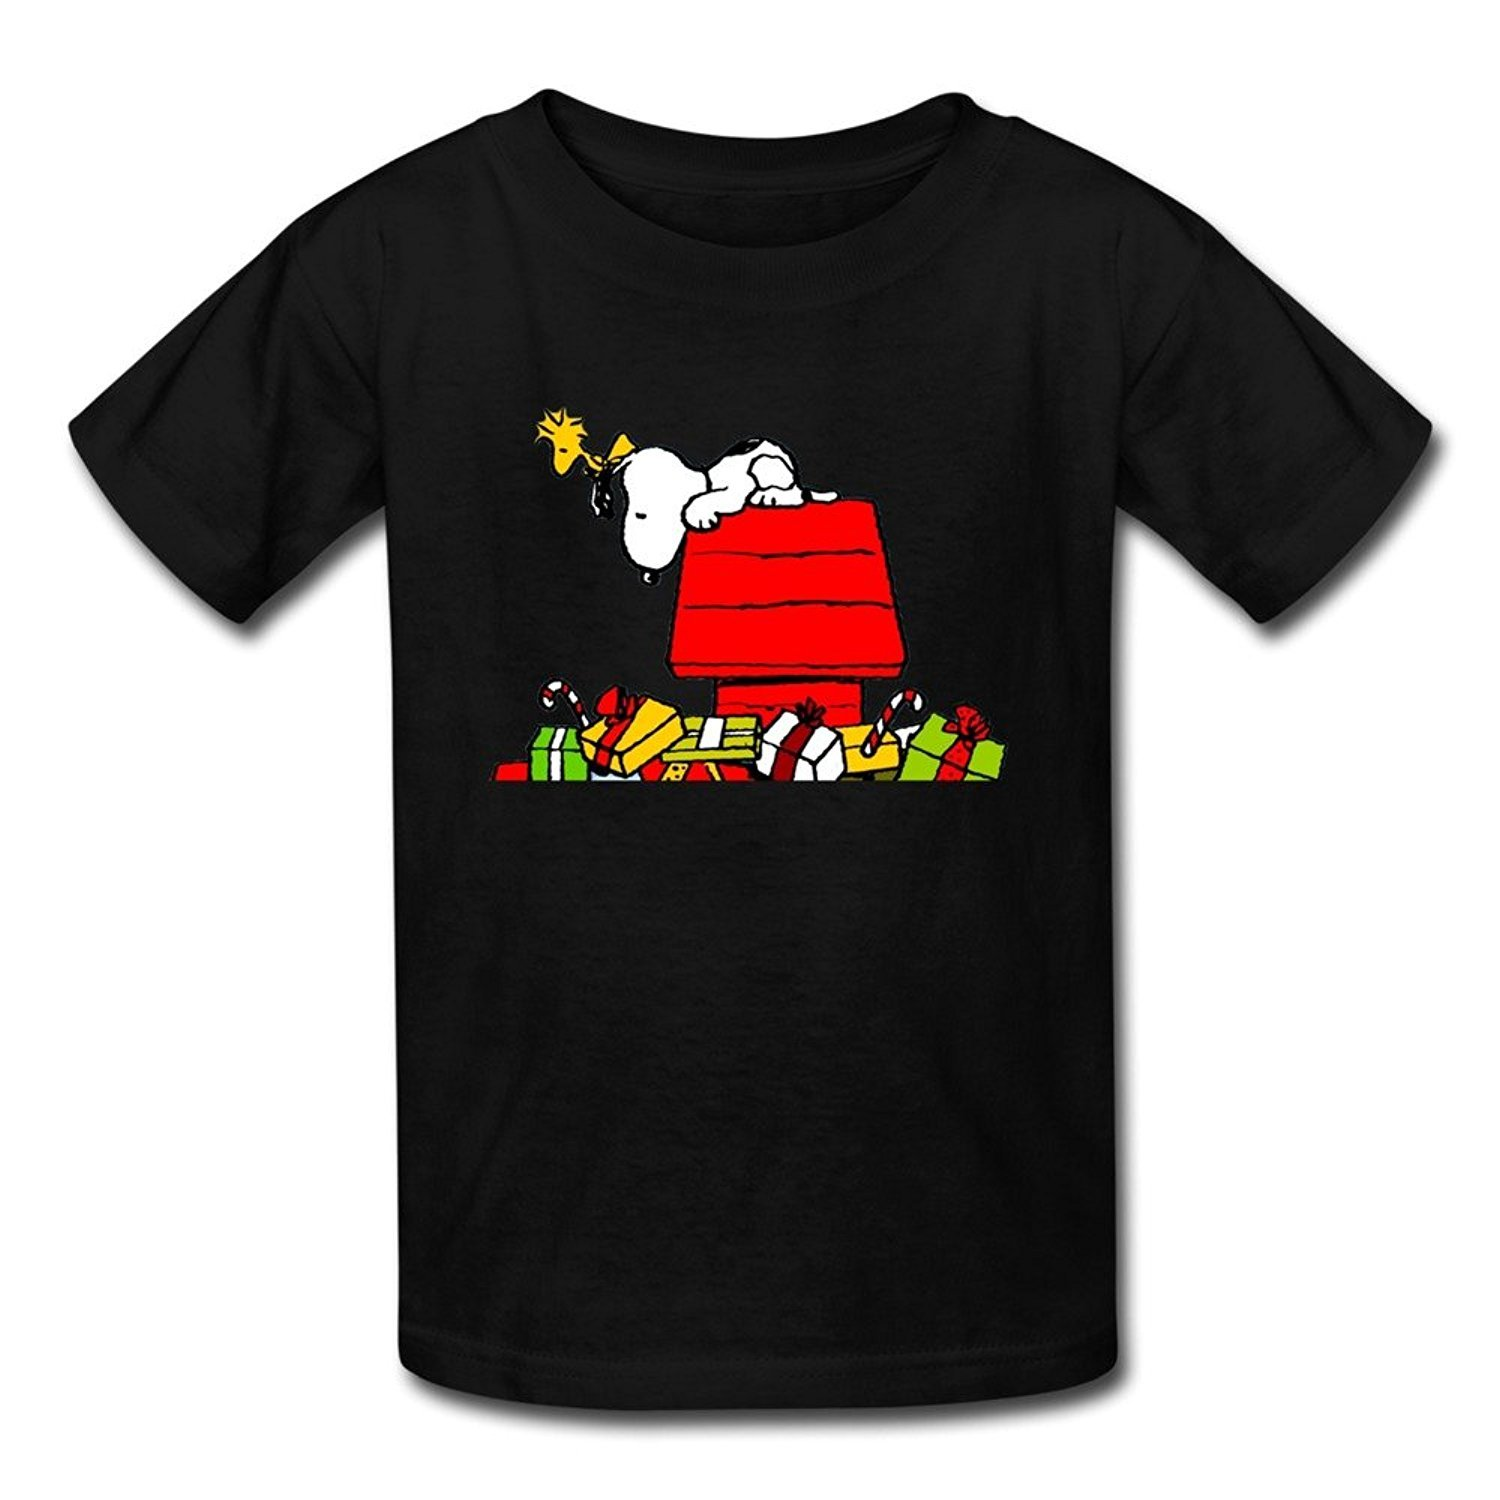 Youth Cool Unique Christmas Snoopy T-Shirt